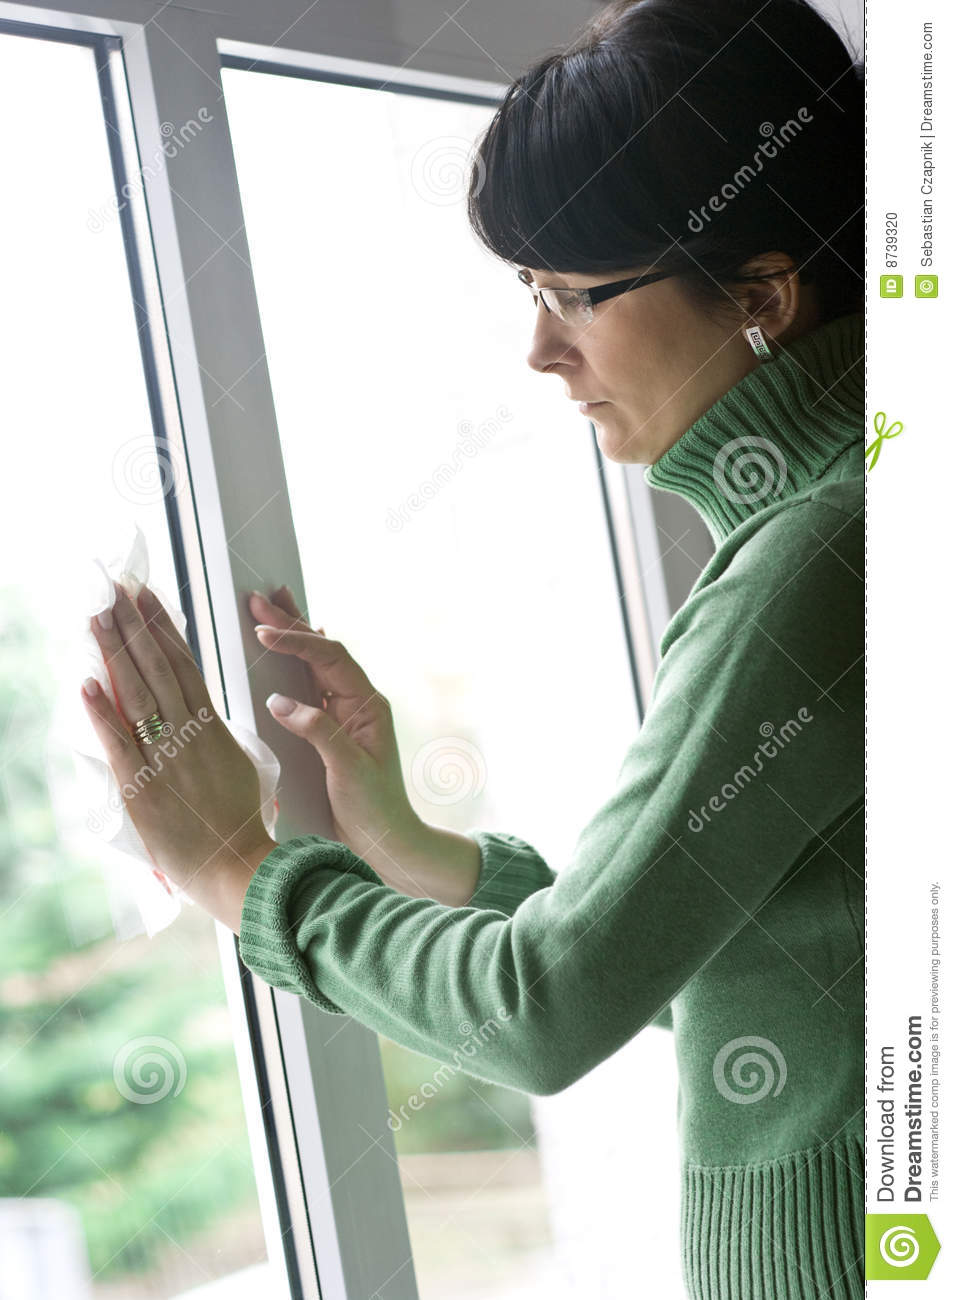 Woman Cleaning Window Stock Photo Image 8739320